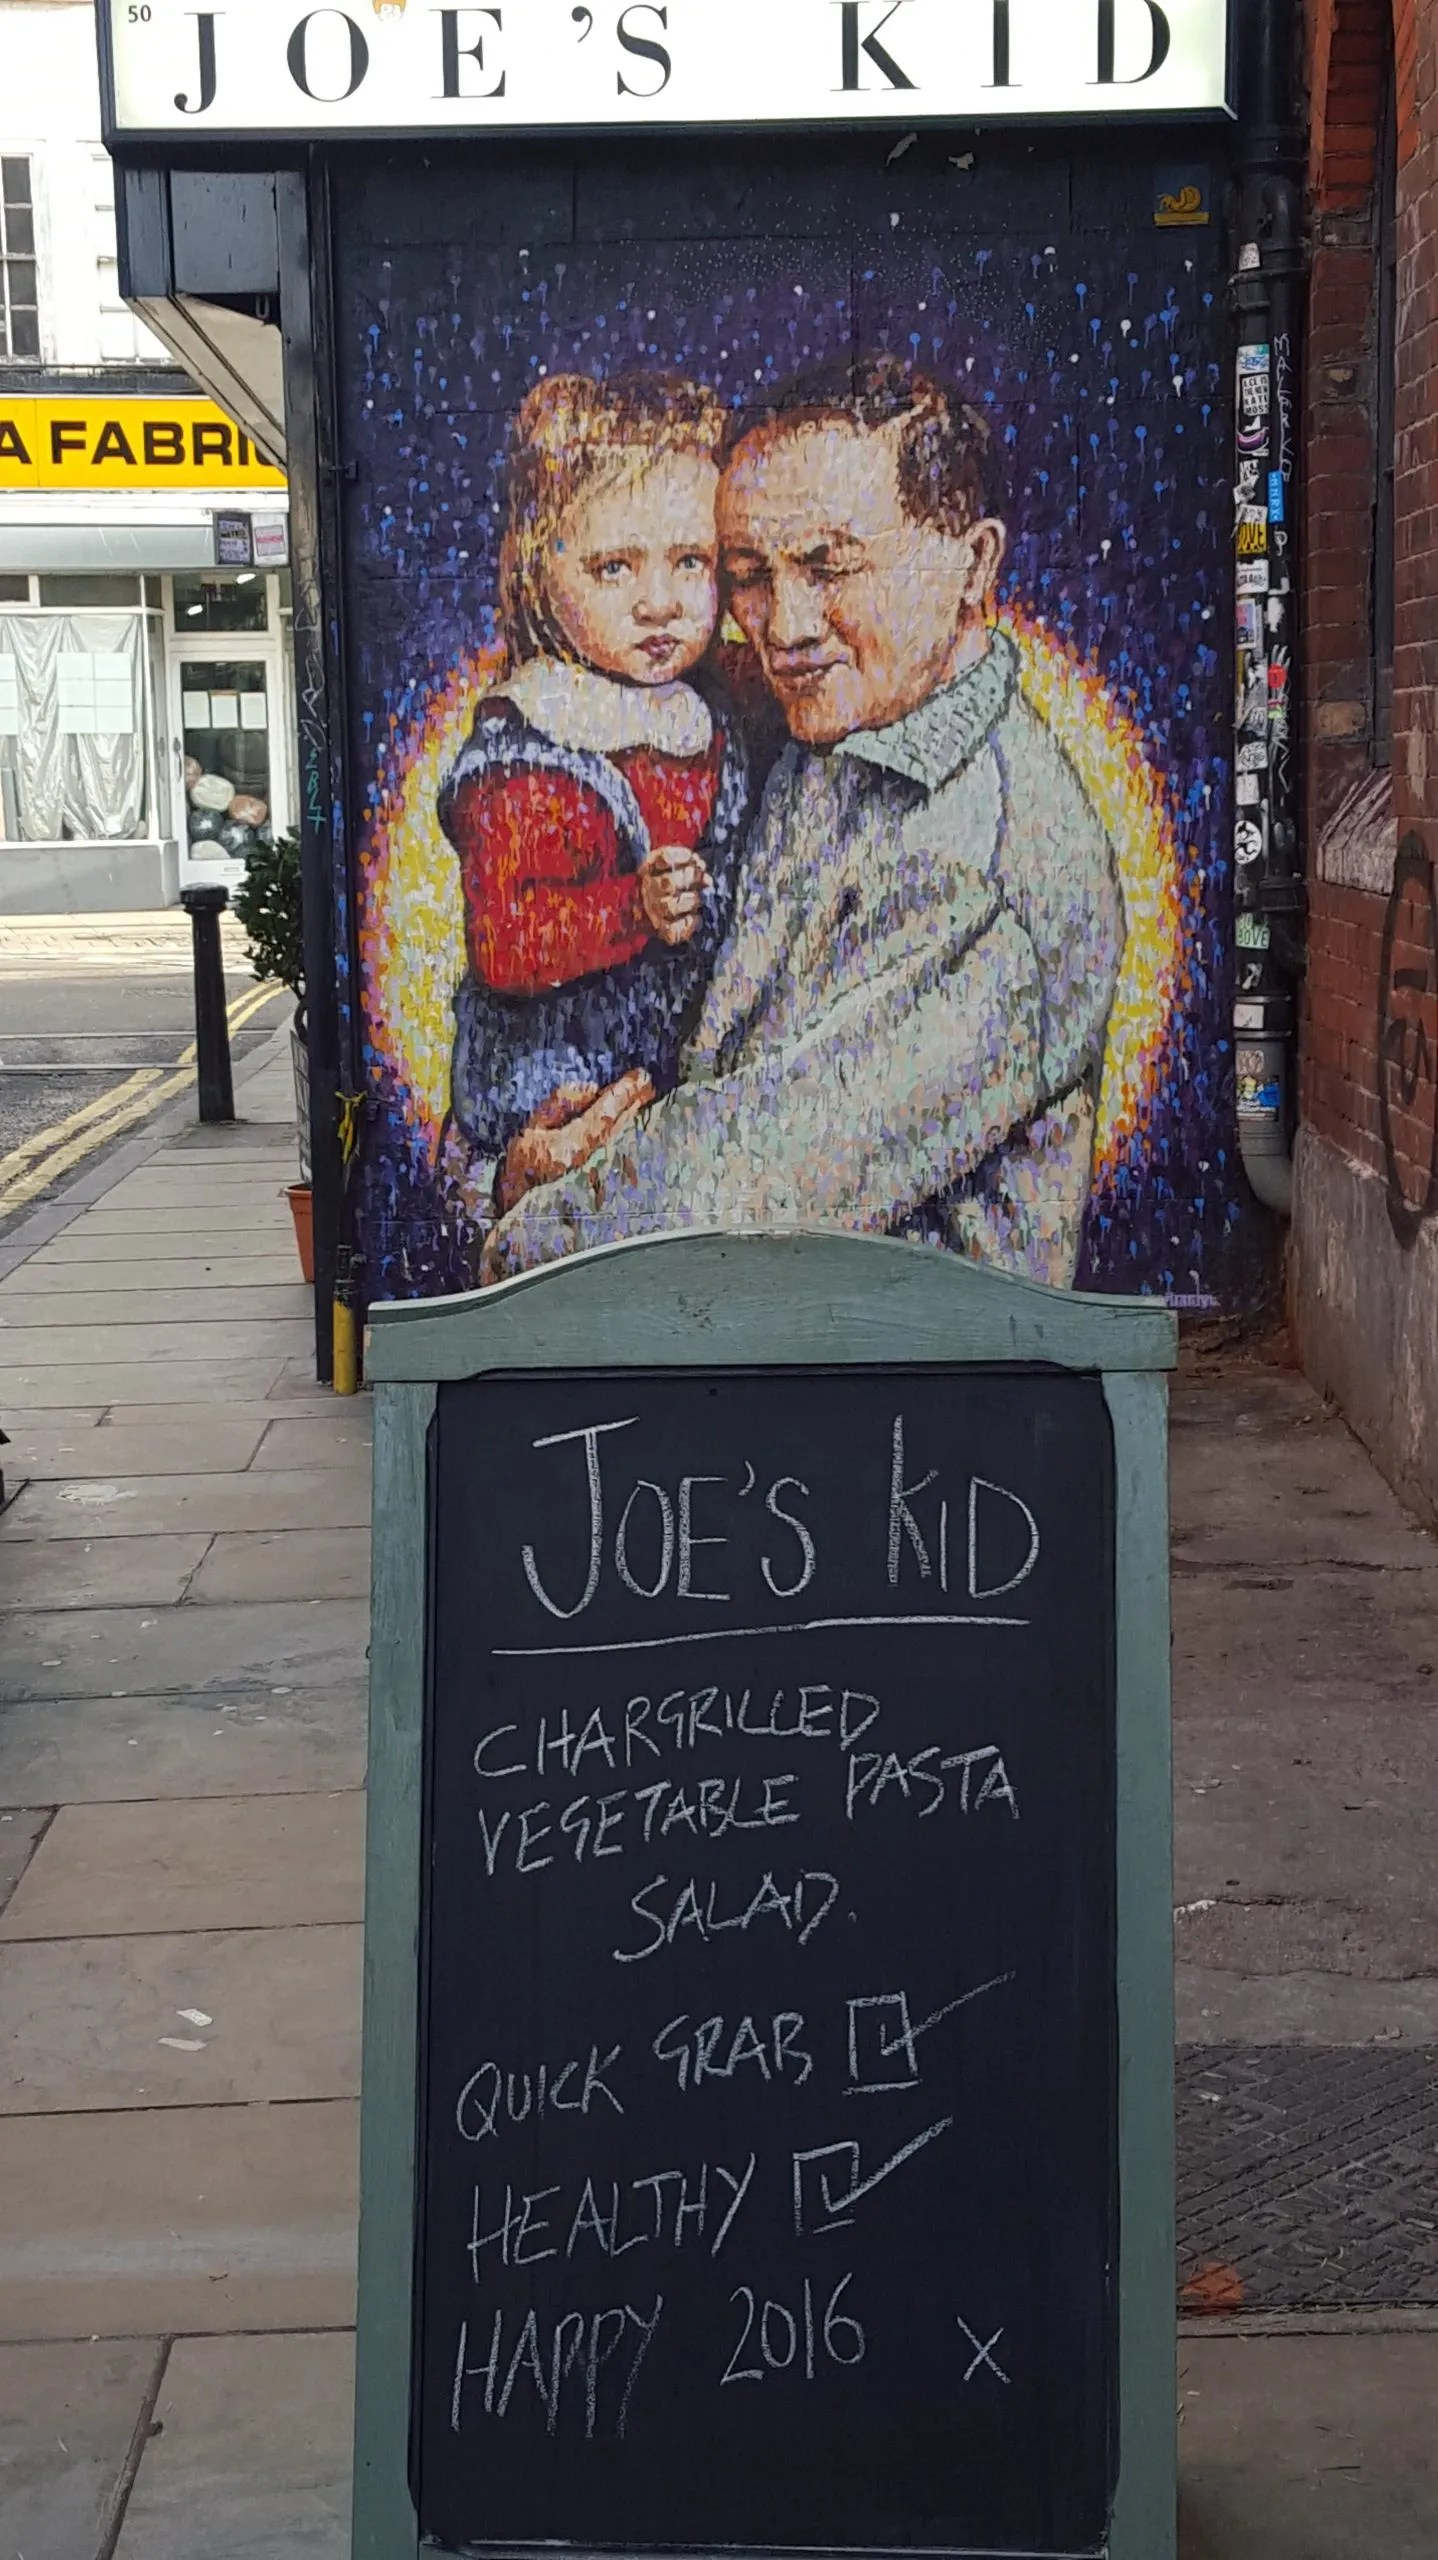 Joe's Kid street art man and child by Jimmy C